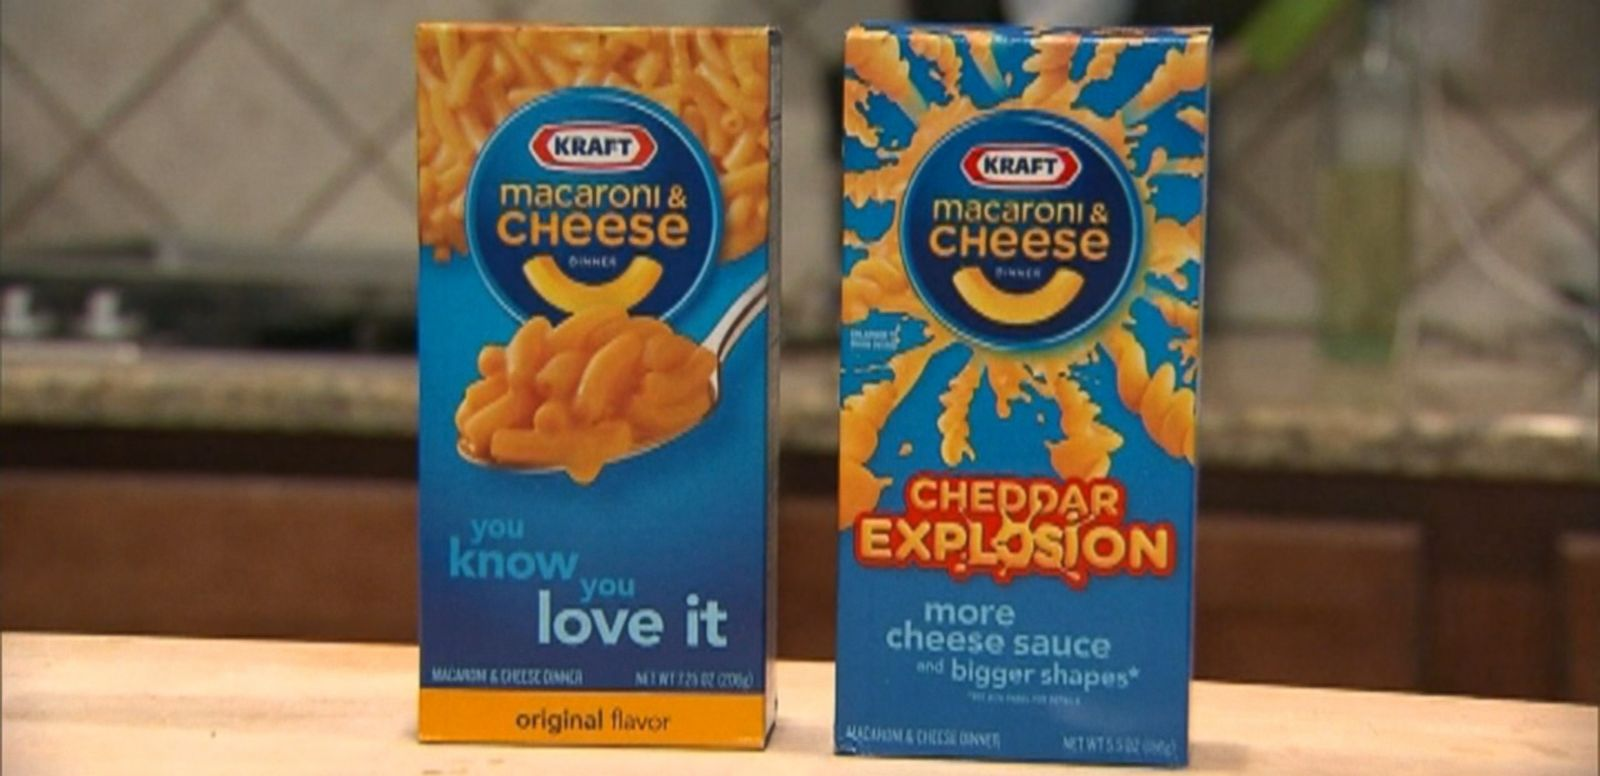 VIDEO: The company announced that by January 2016 its macaroni and cheese products will no longer contain artificial preservatives or synthetic colors.